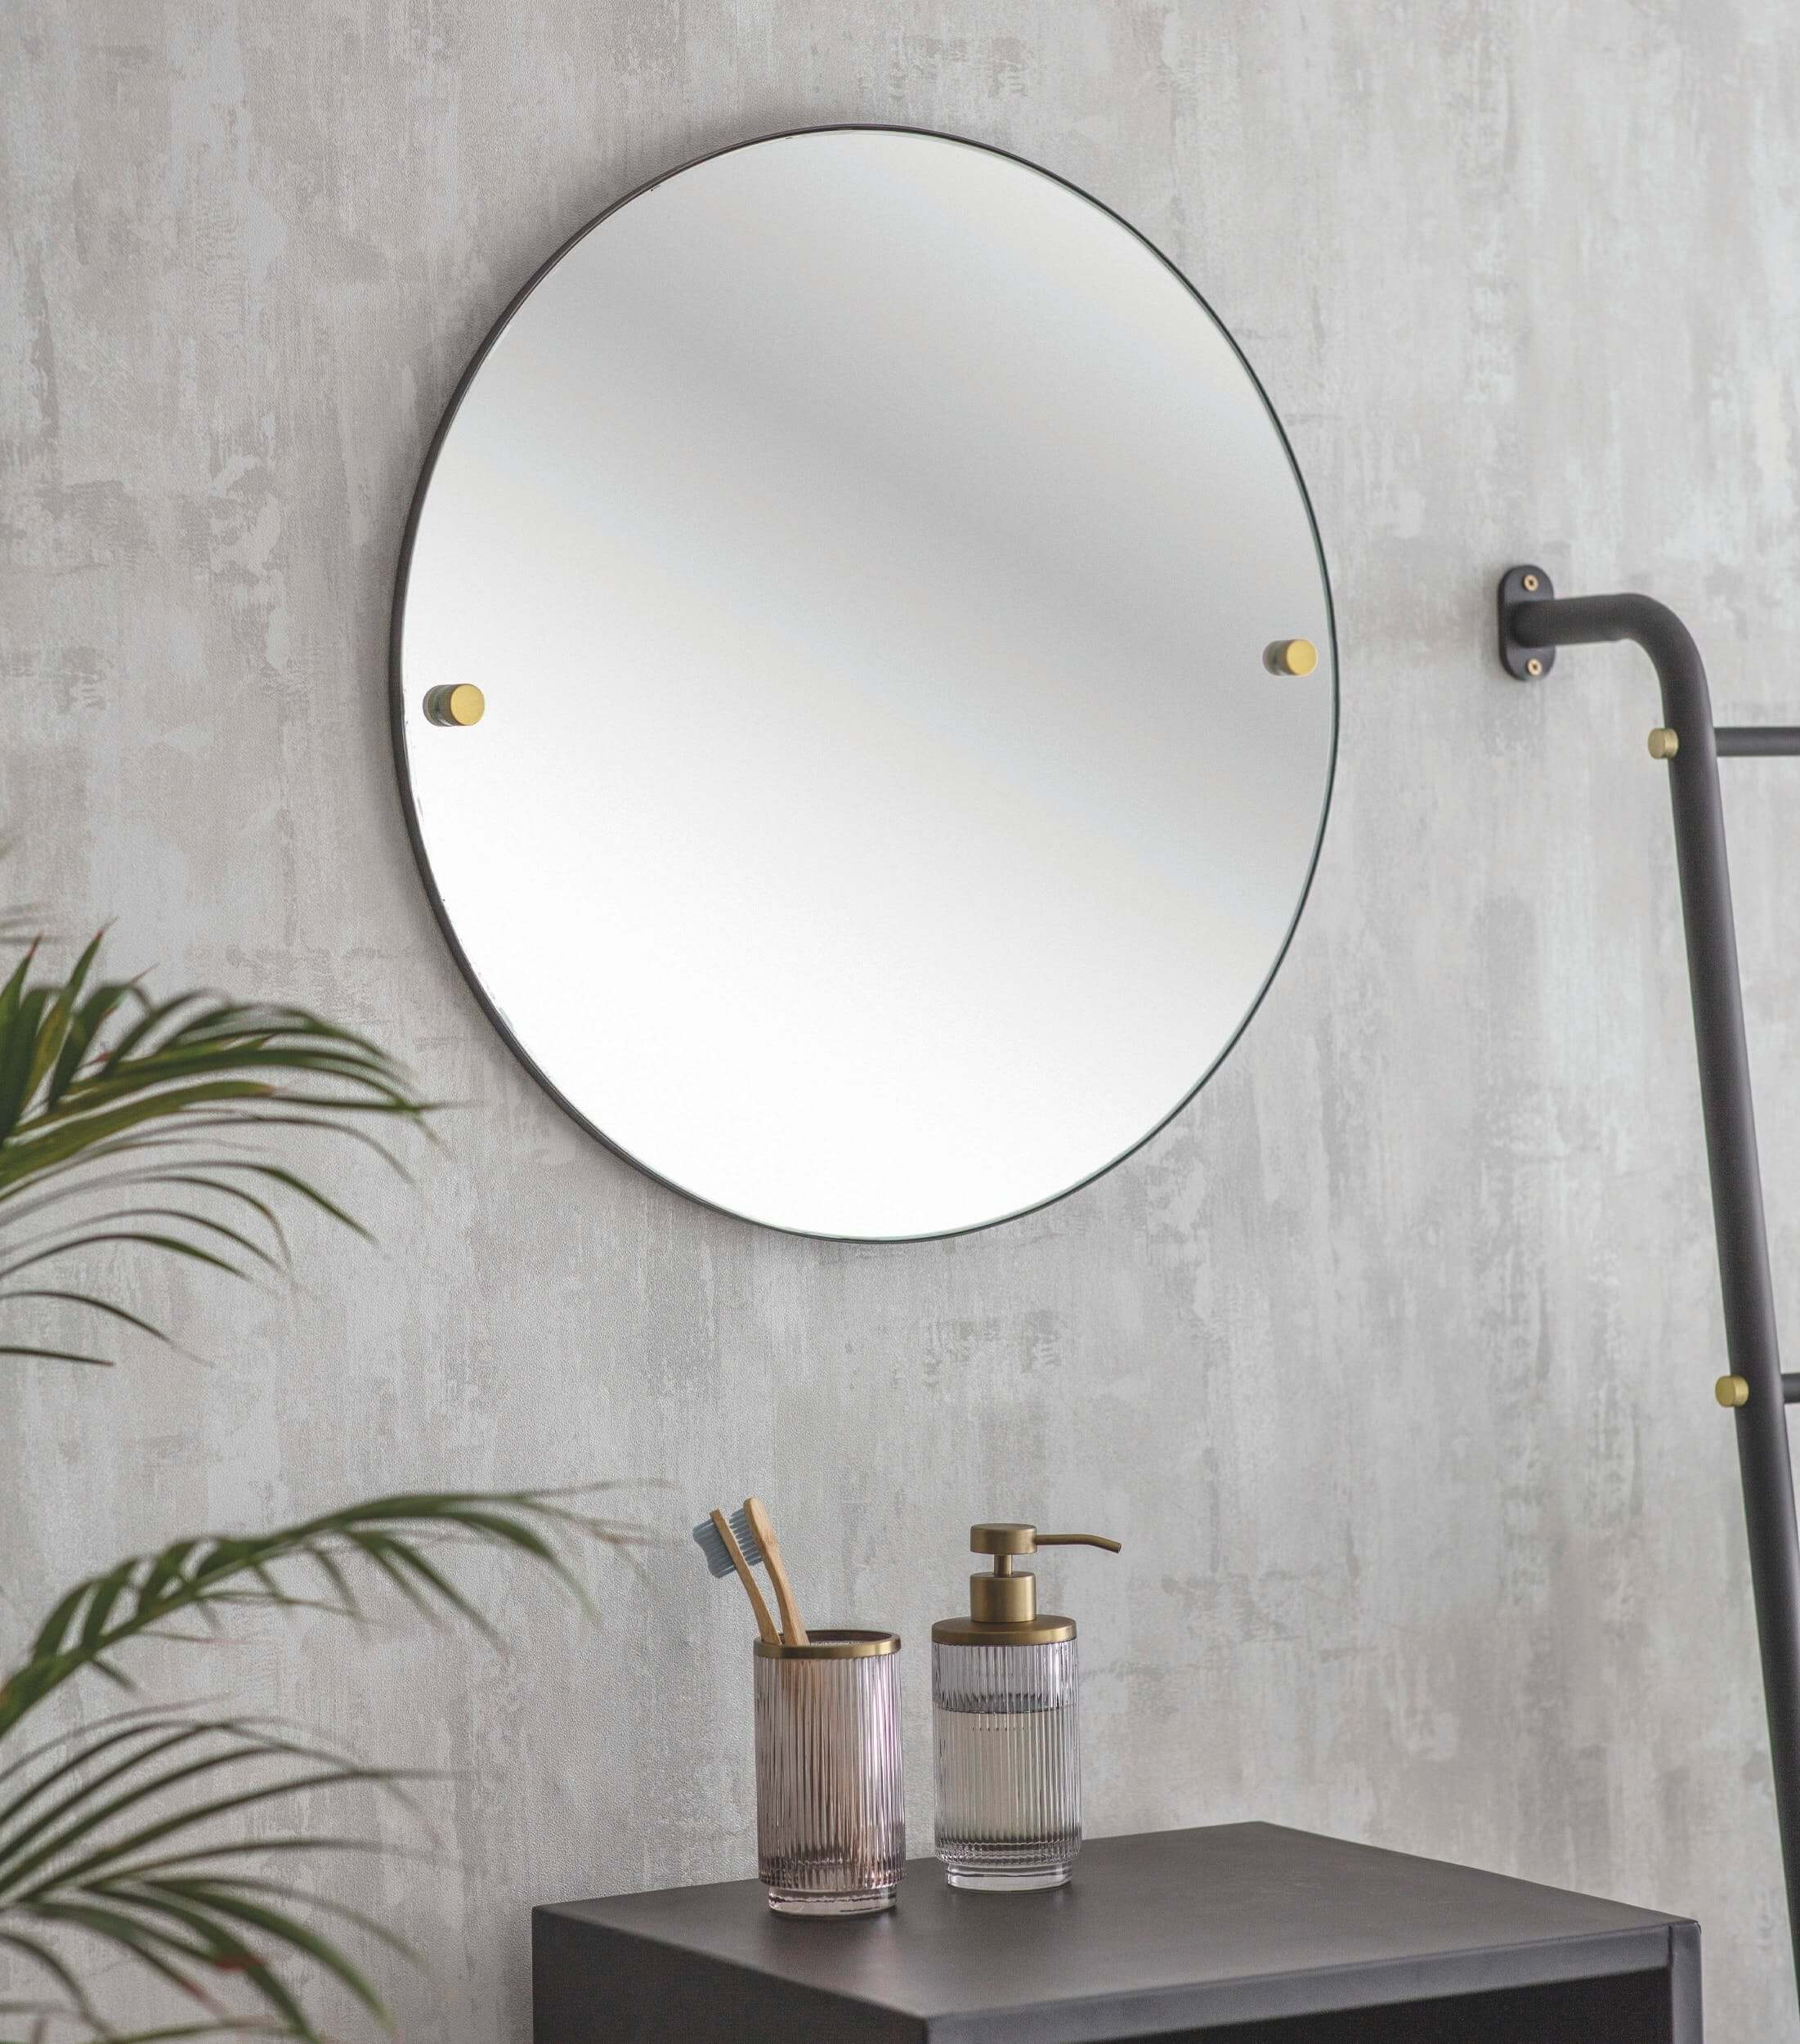 Matt Black Bathroom Mirror